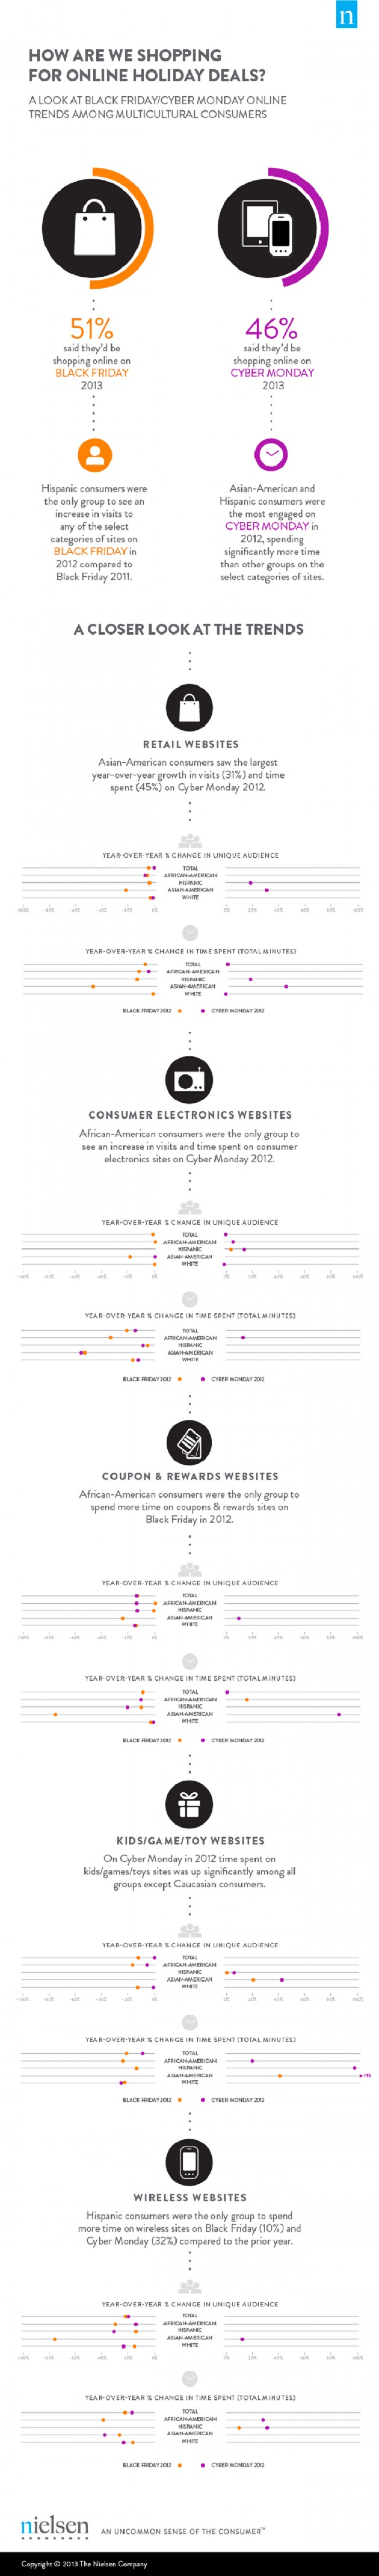 How Are We Shopping for Online Holiday Deals Infographic